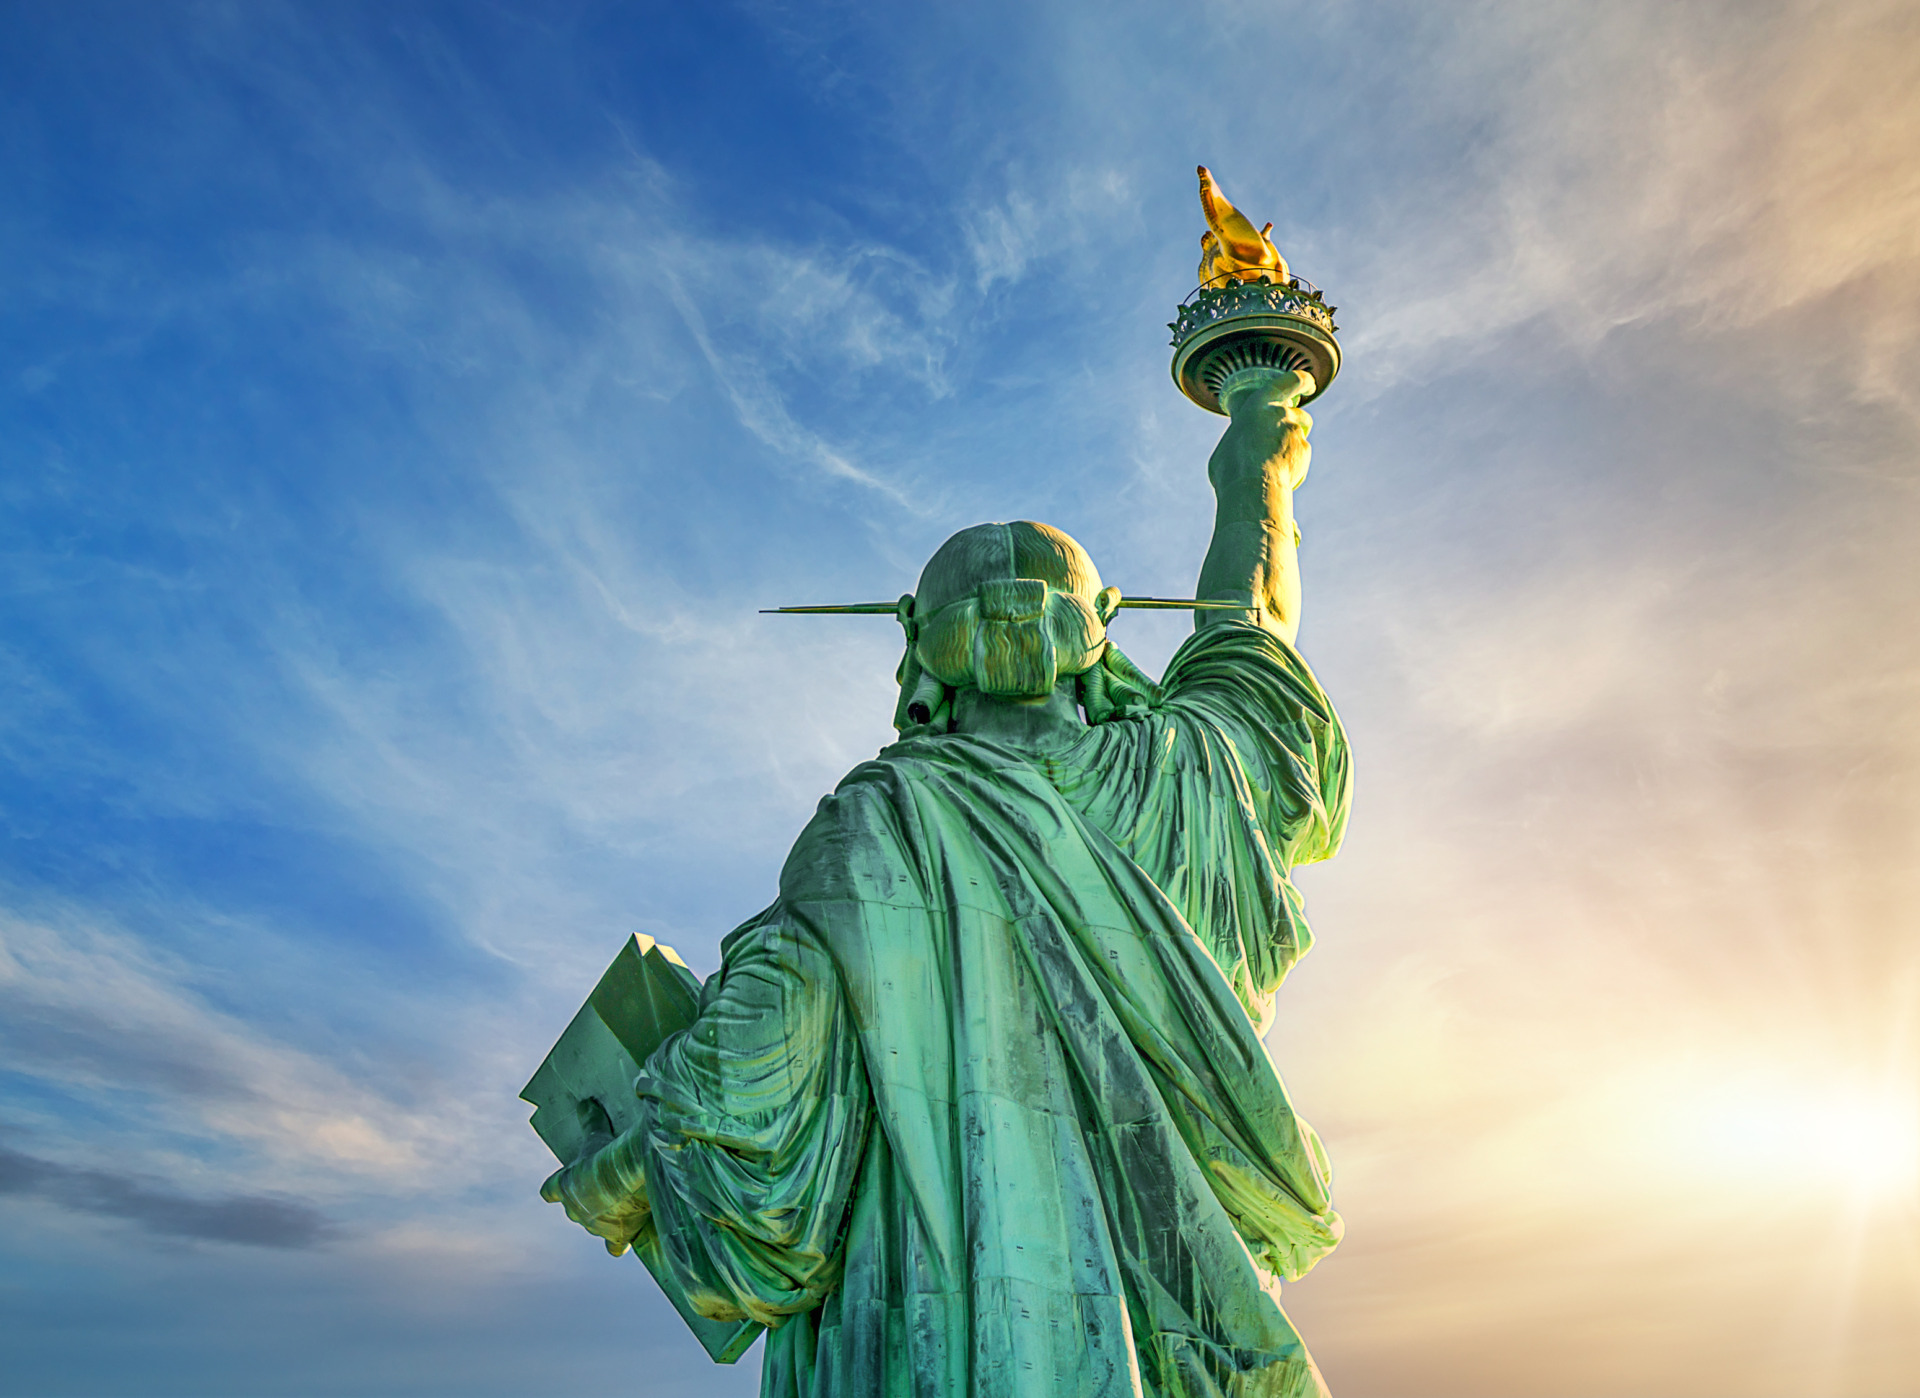 Back side view of the Statue of Liberty, New York, USA